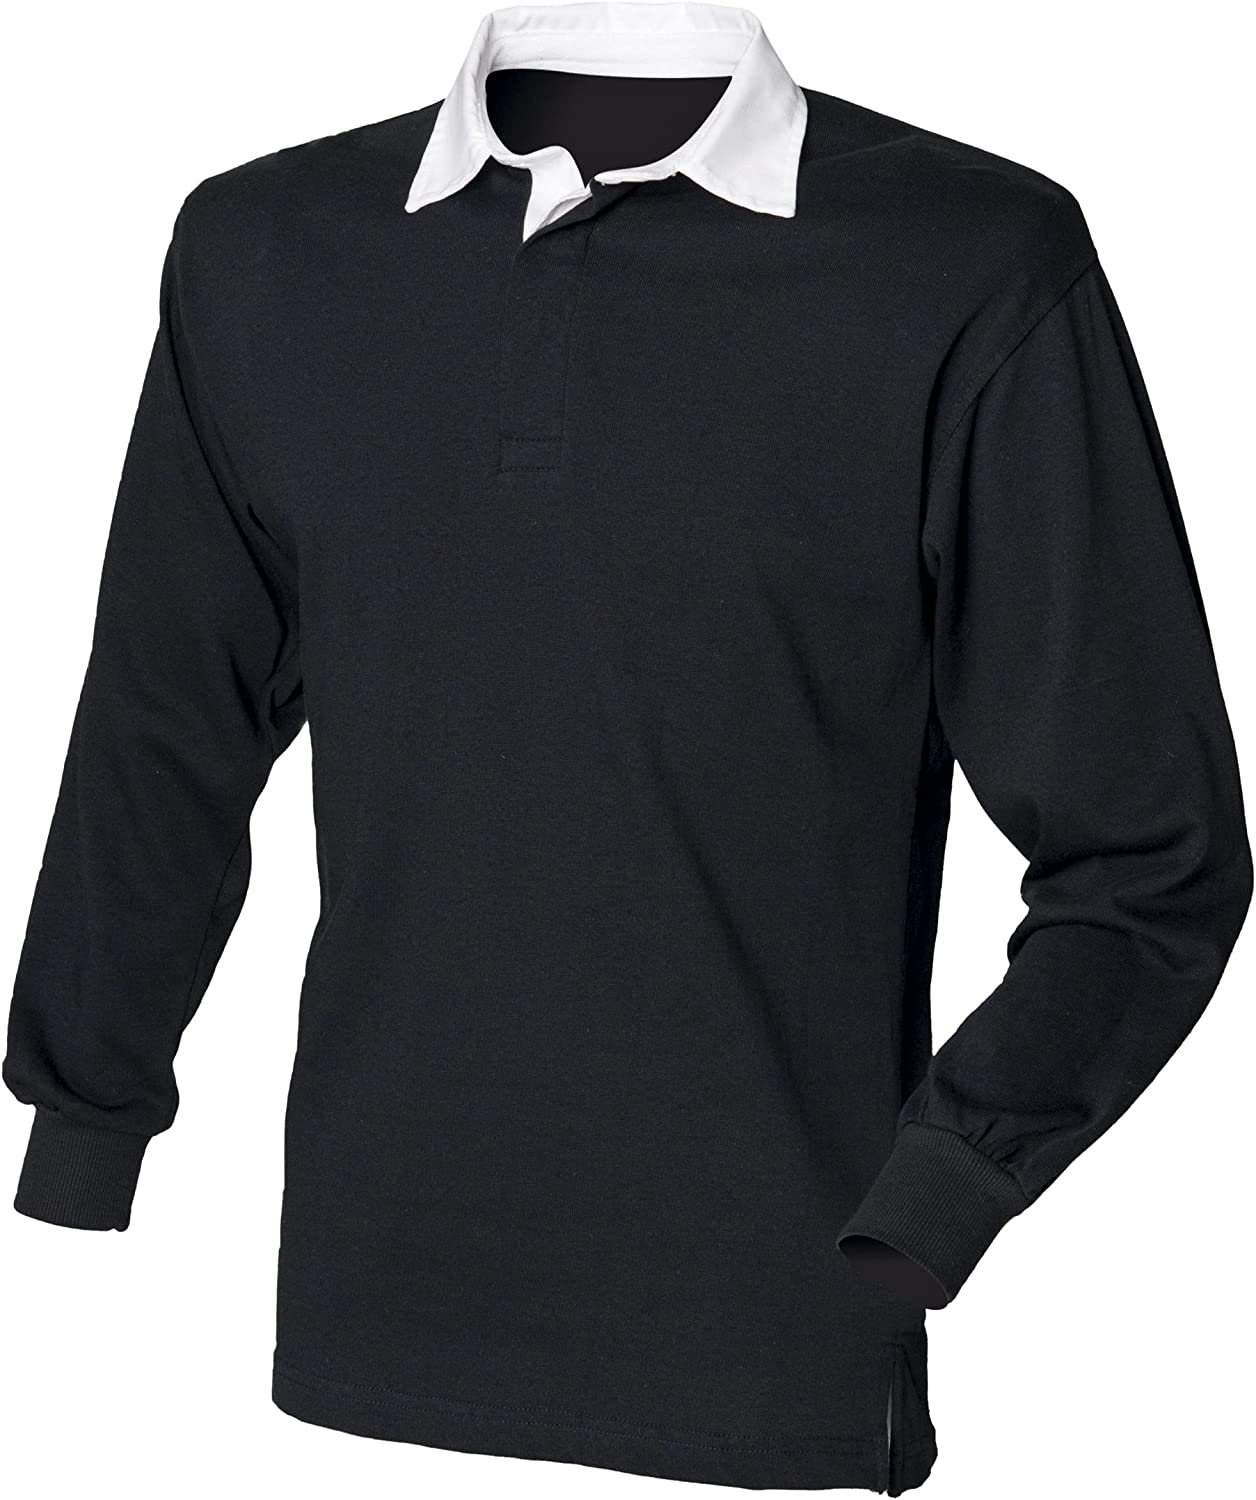 Front Row Long Sleeve Charlotte Mall COLOUR Shirt Rugby Classic Clearance SALE! Limited time!